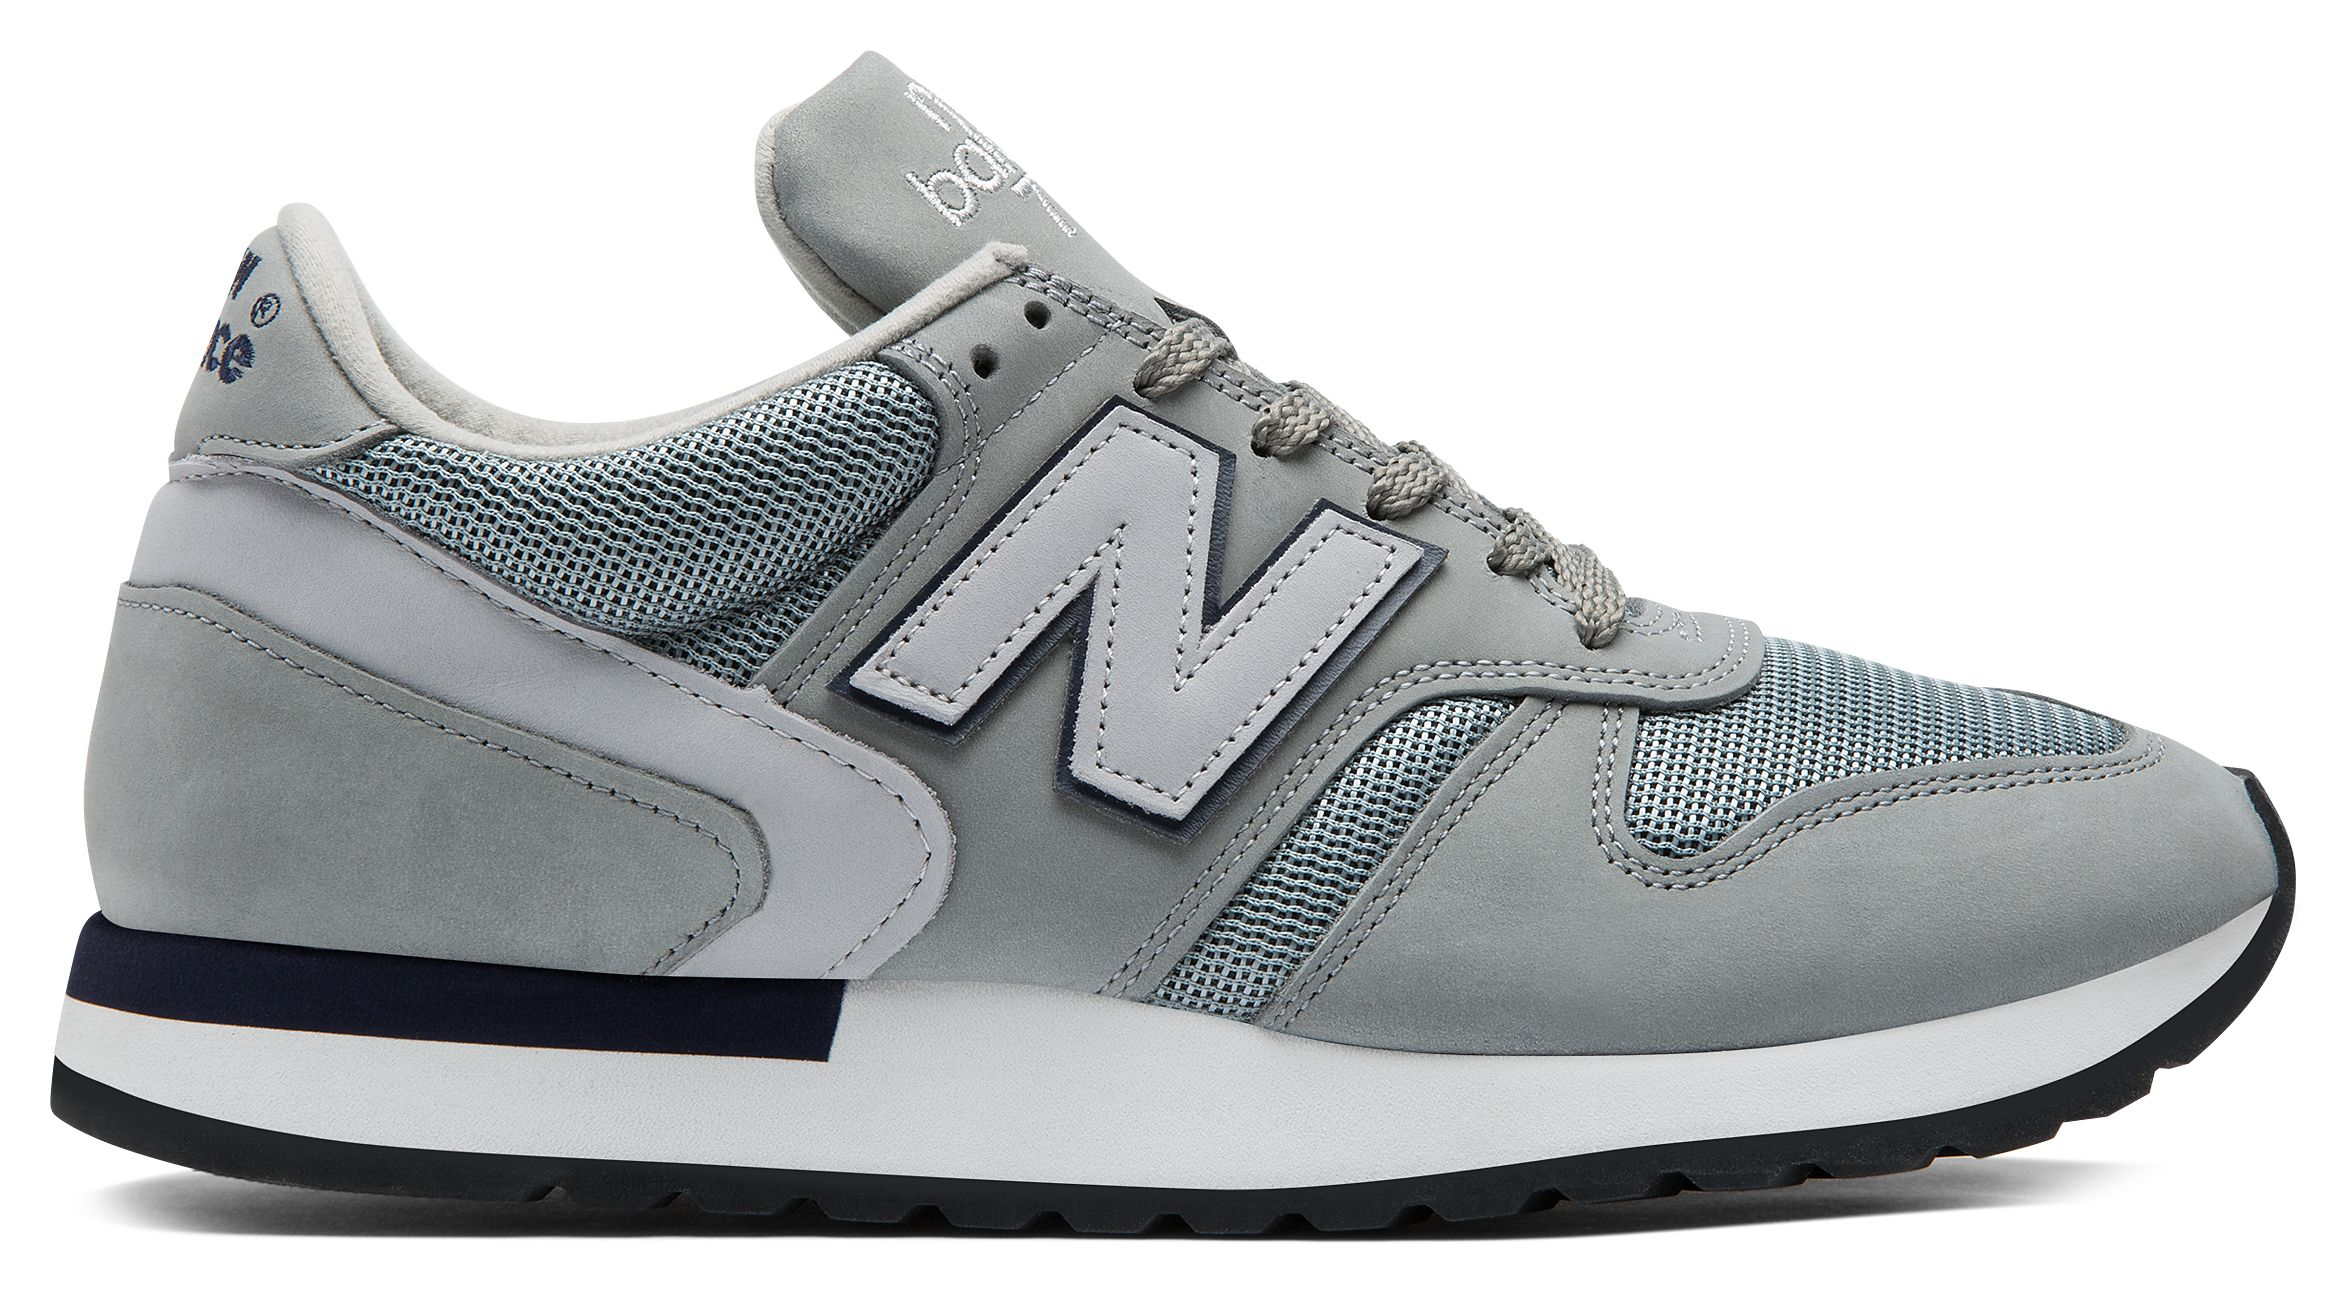 NB 770 Made in UK Suede, Grey with Palm Print